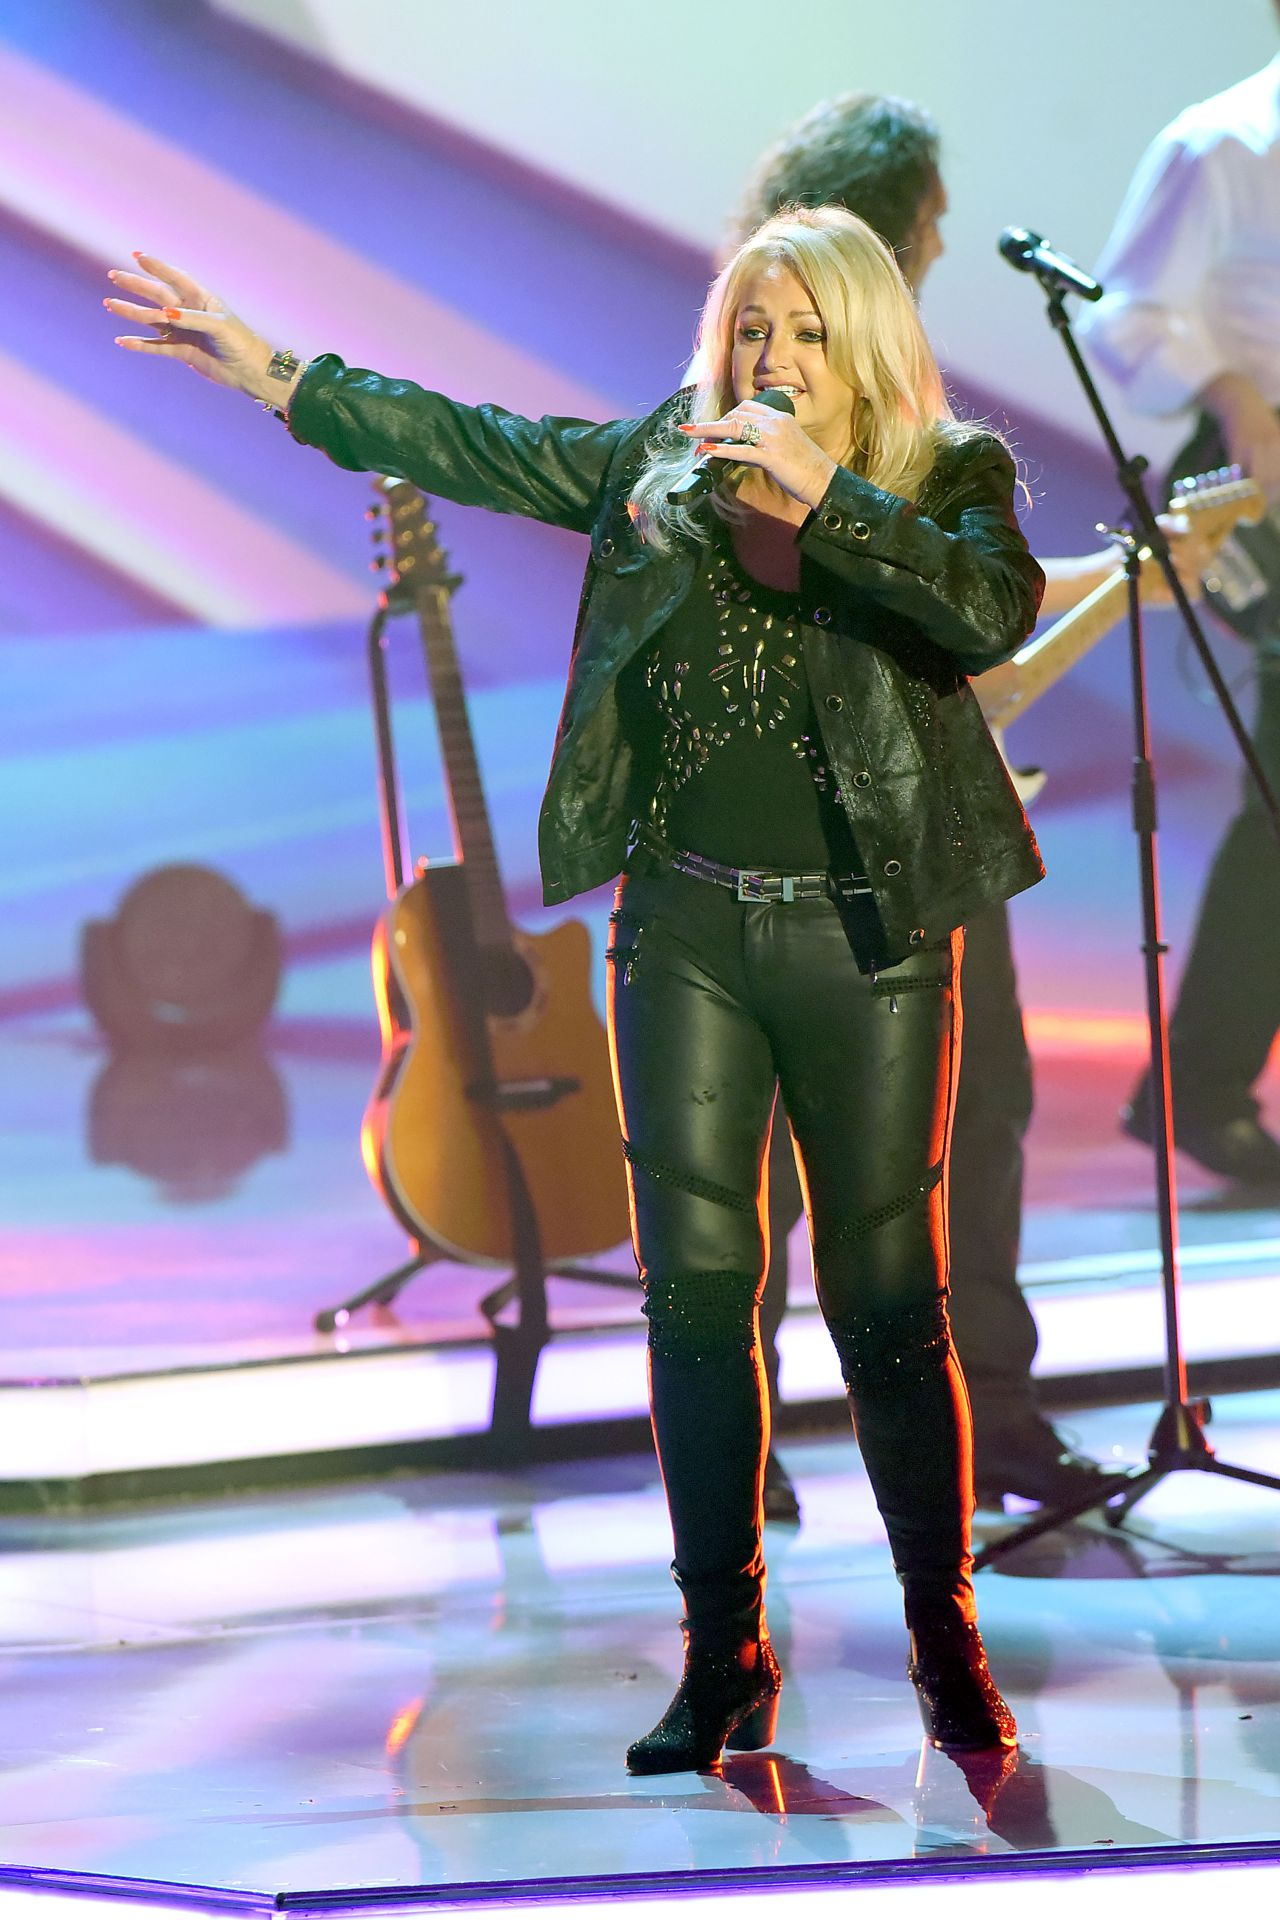 bonnie tyler - photo #13